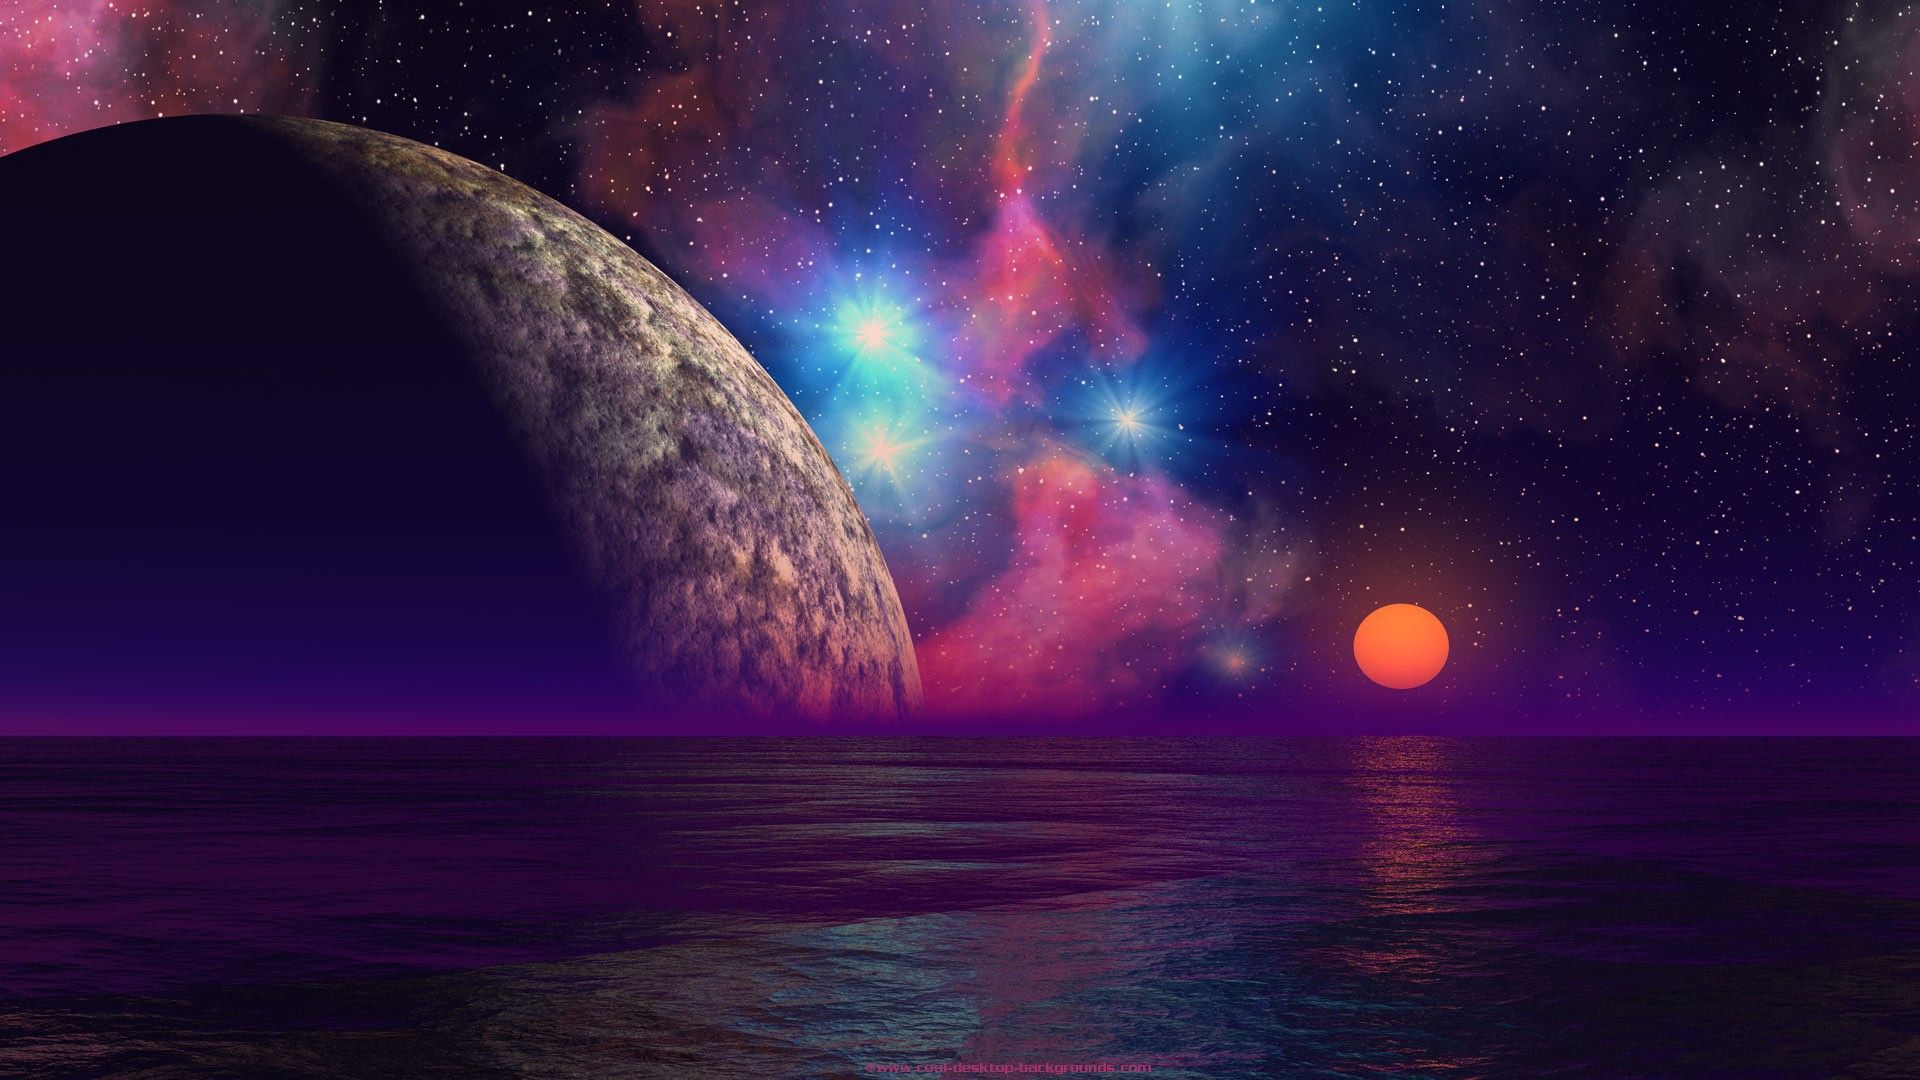 Planets background wallpaper ocean sunset for Outer space landscape